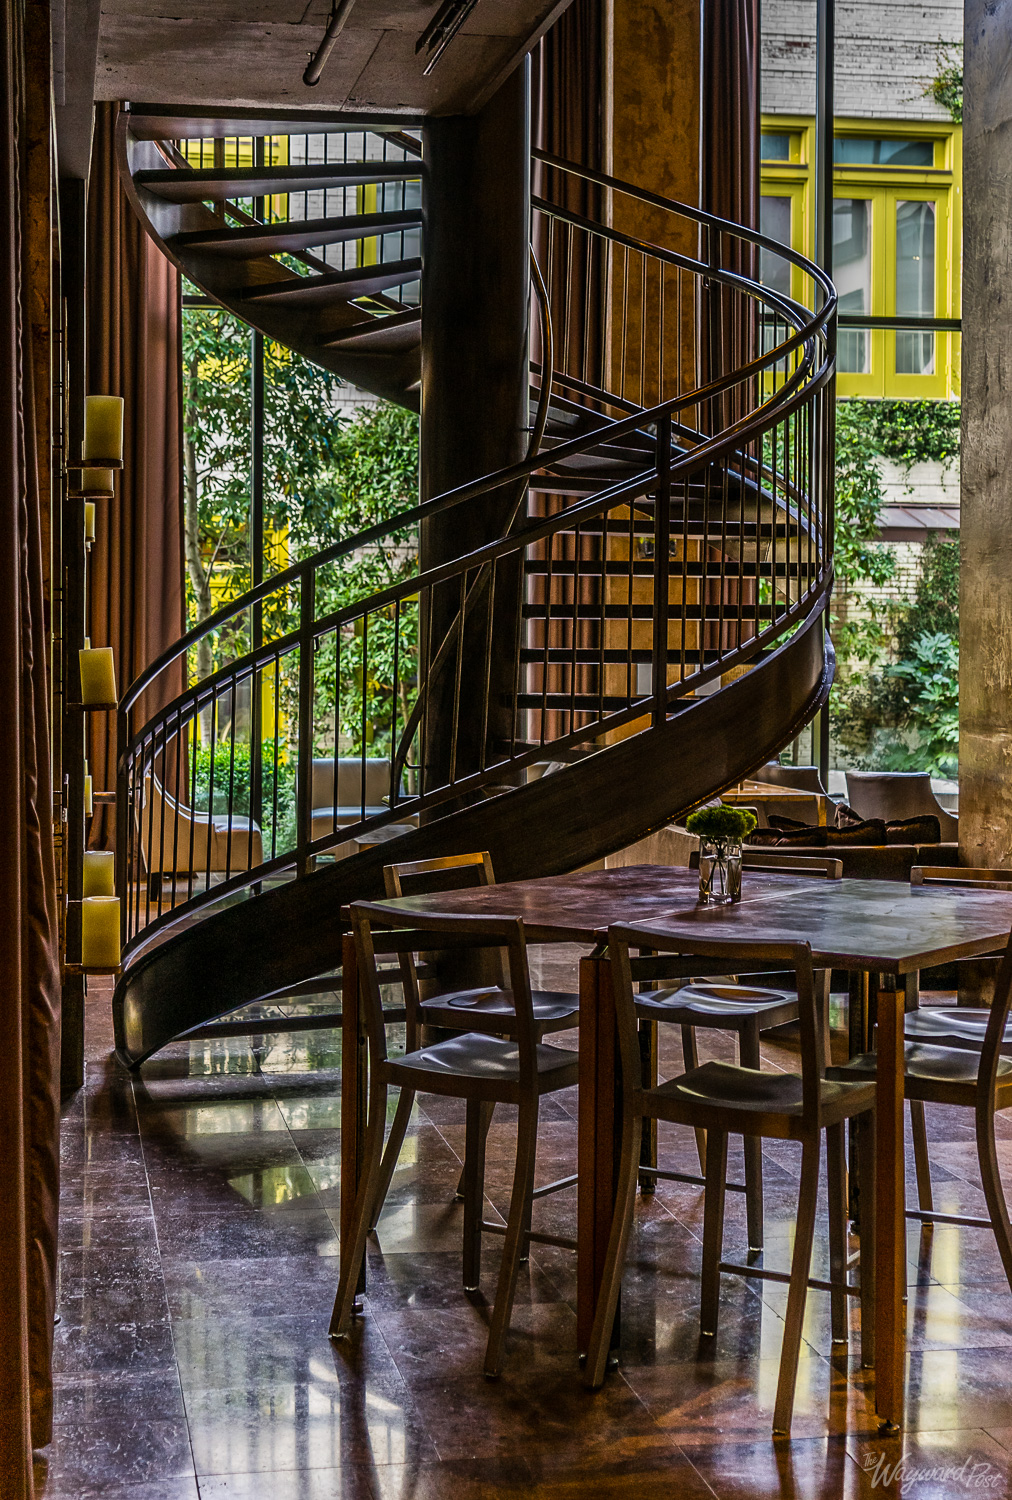 Spiral staircase to the lounge area and bluebell garden at the Proximity Hotel Greensboro North Carolina. Photo by  Zygmunt Spray .